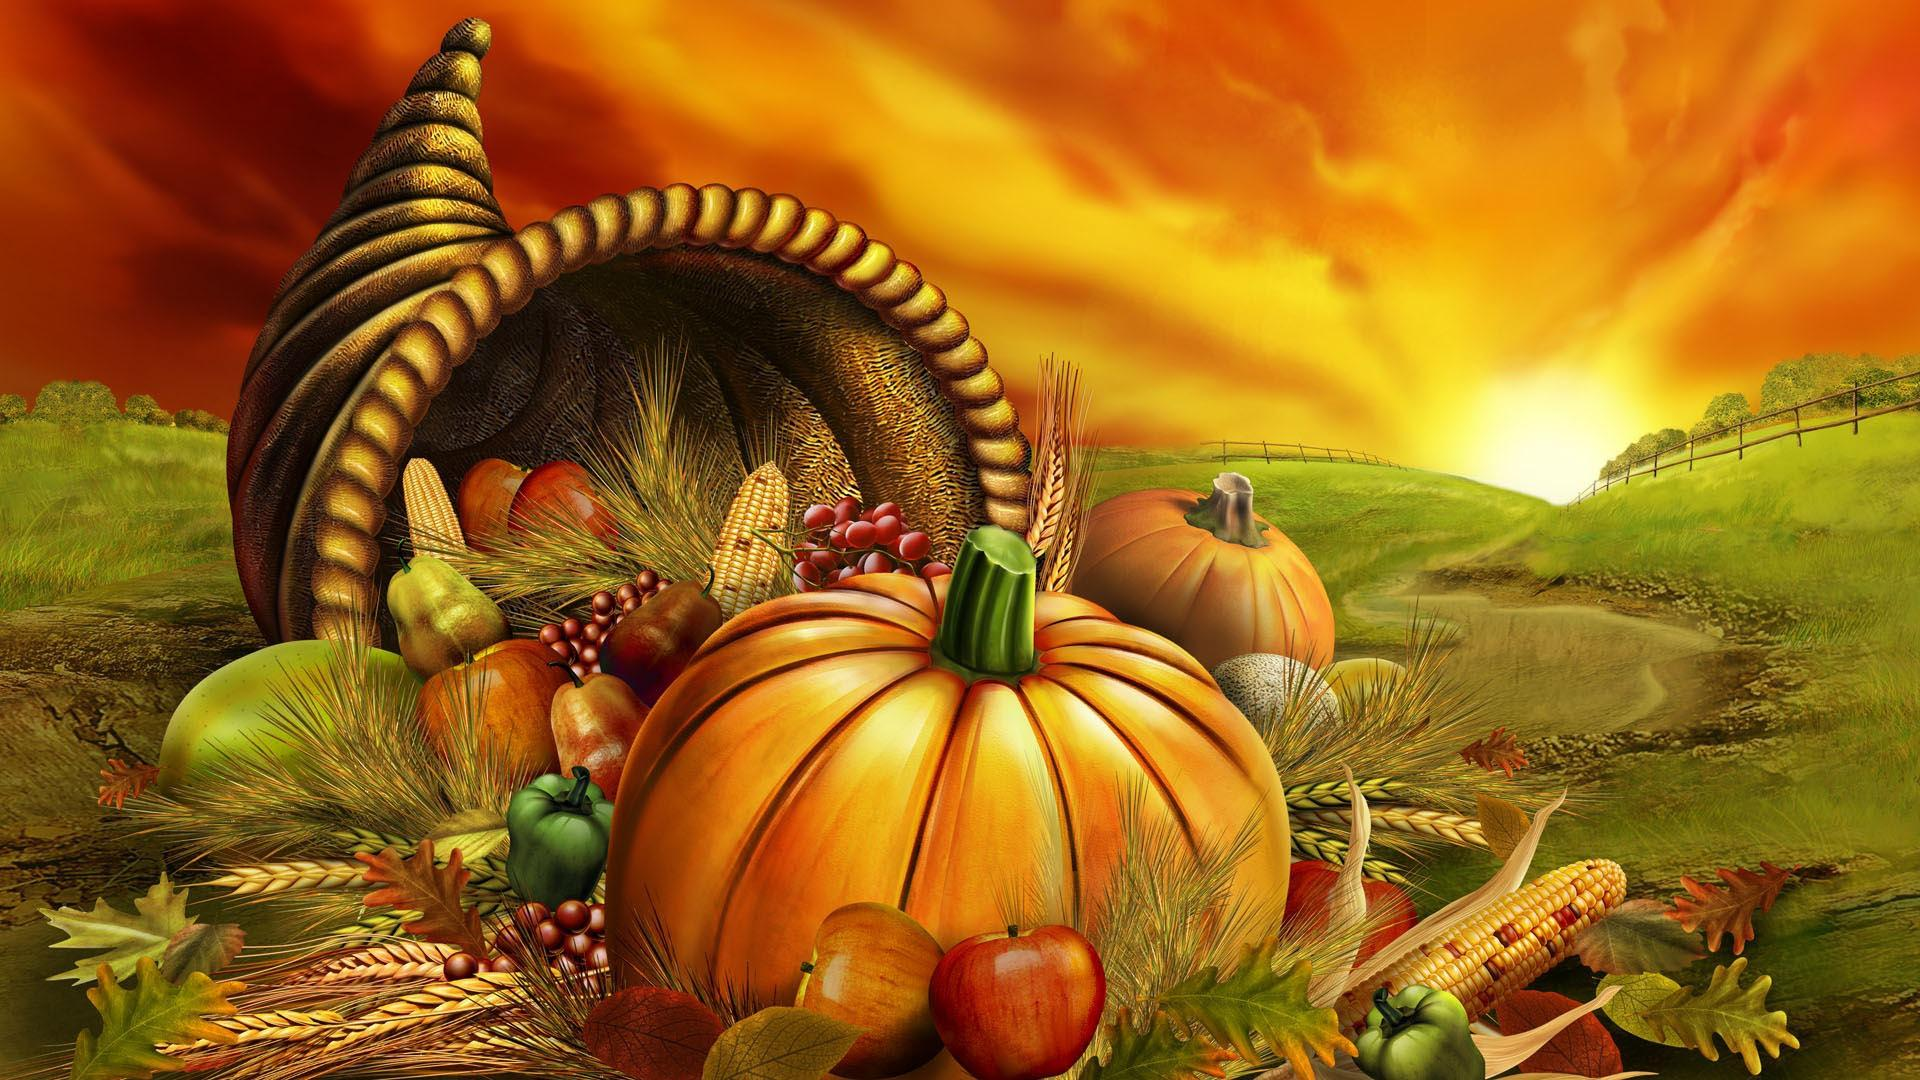 Thanksgiving Day HD Wallpaper » FullHDWpp - Full HD Wallpapers 1920x1080